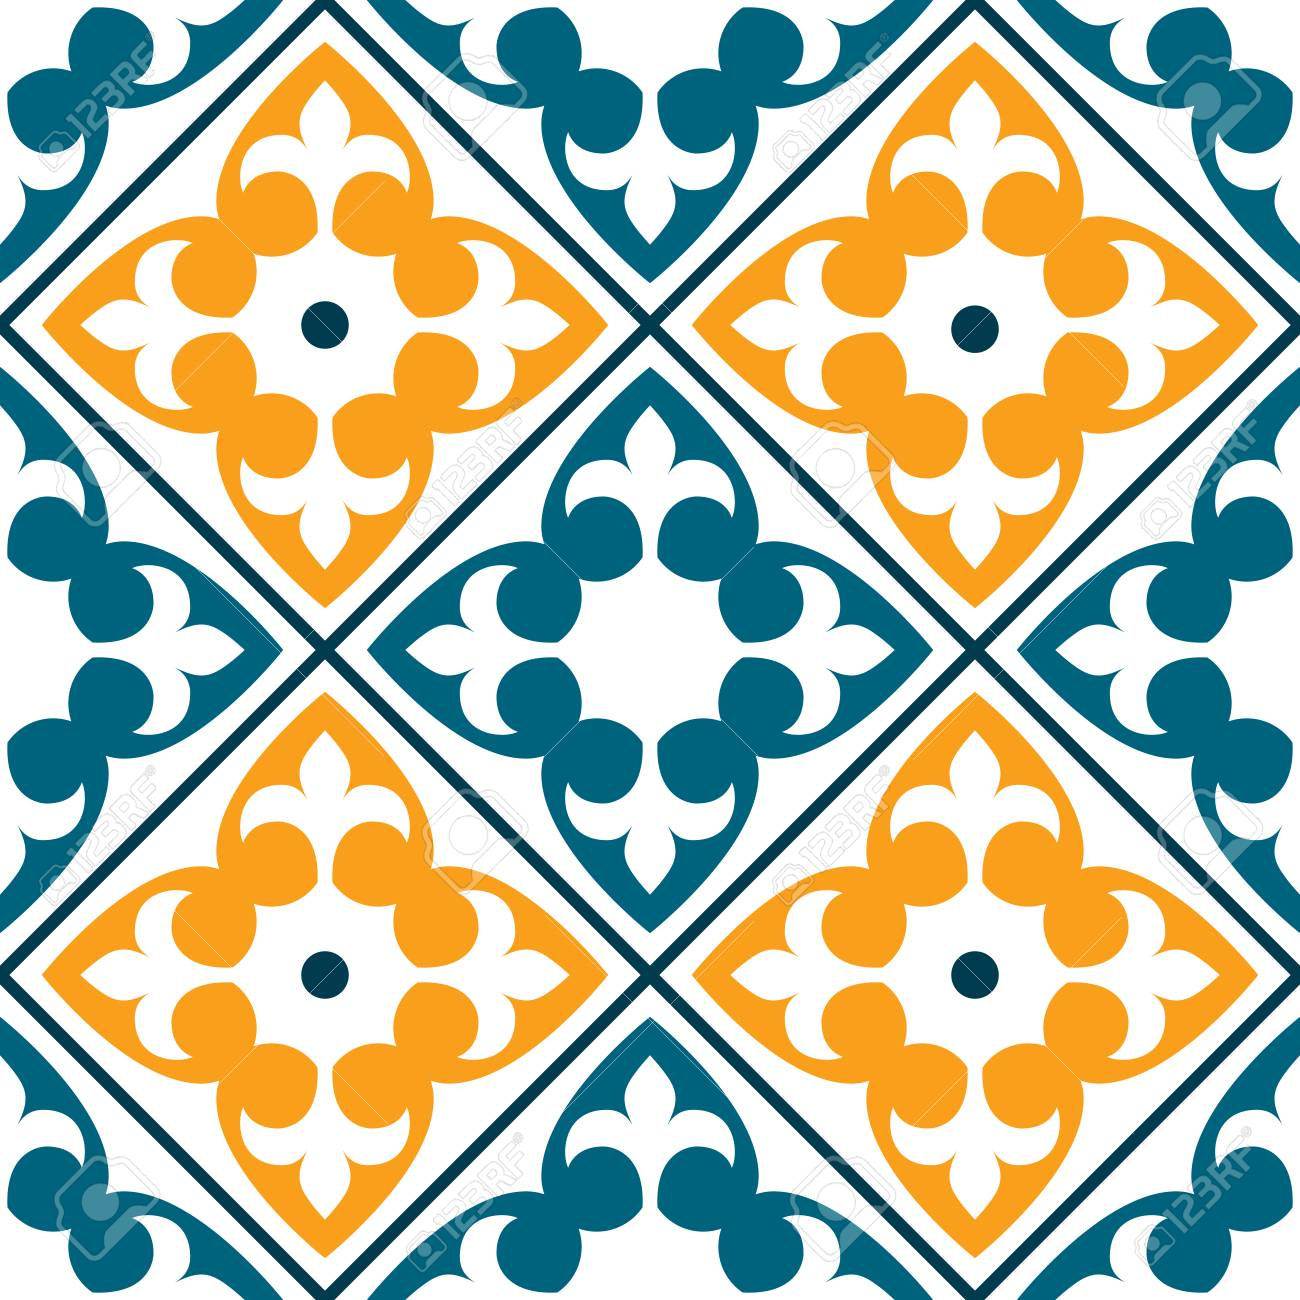 Spanish Or Portuguese Azulejo Design And Moroccan Design Seamless Royalty Free Cliparts Vectors And Stock Illustration Image 74338443